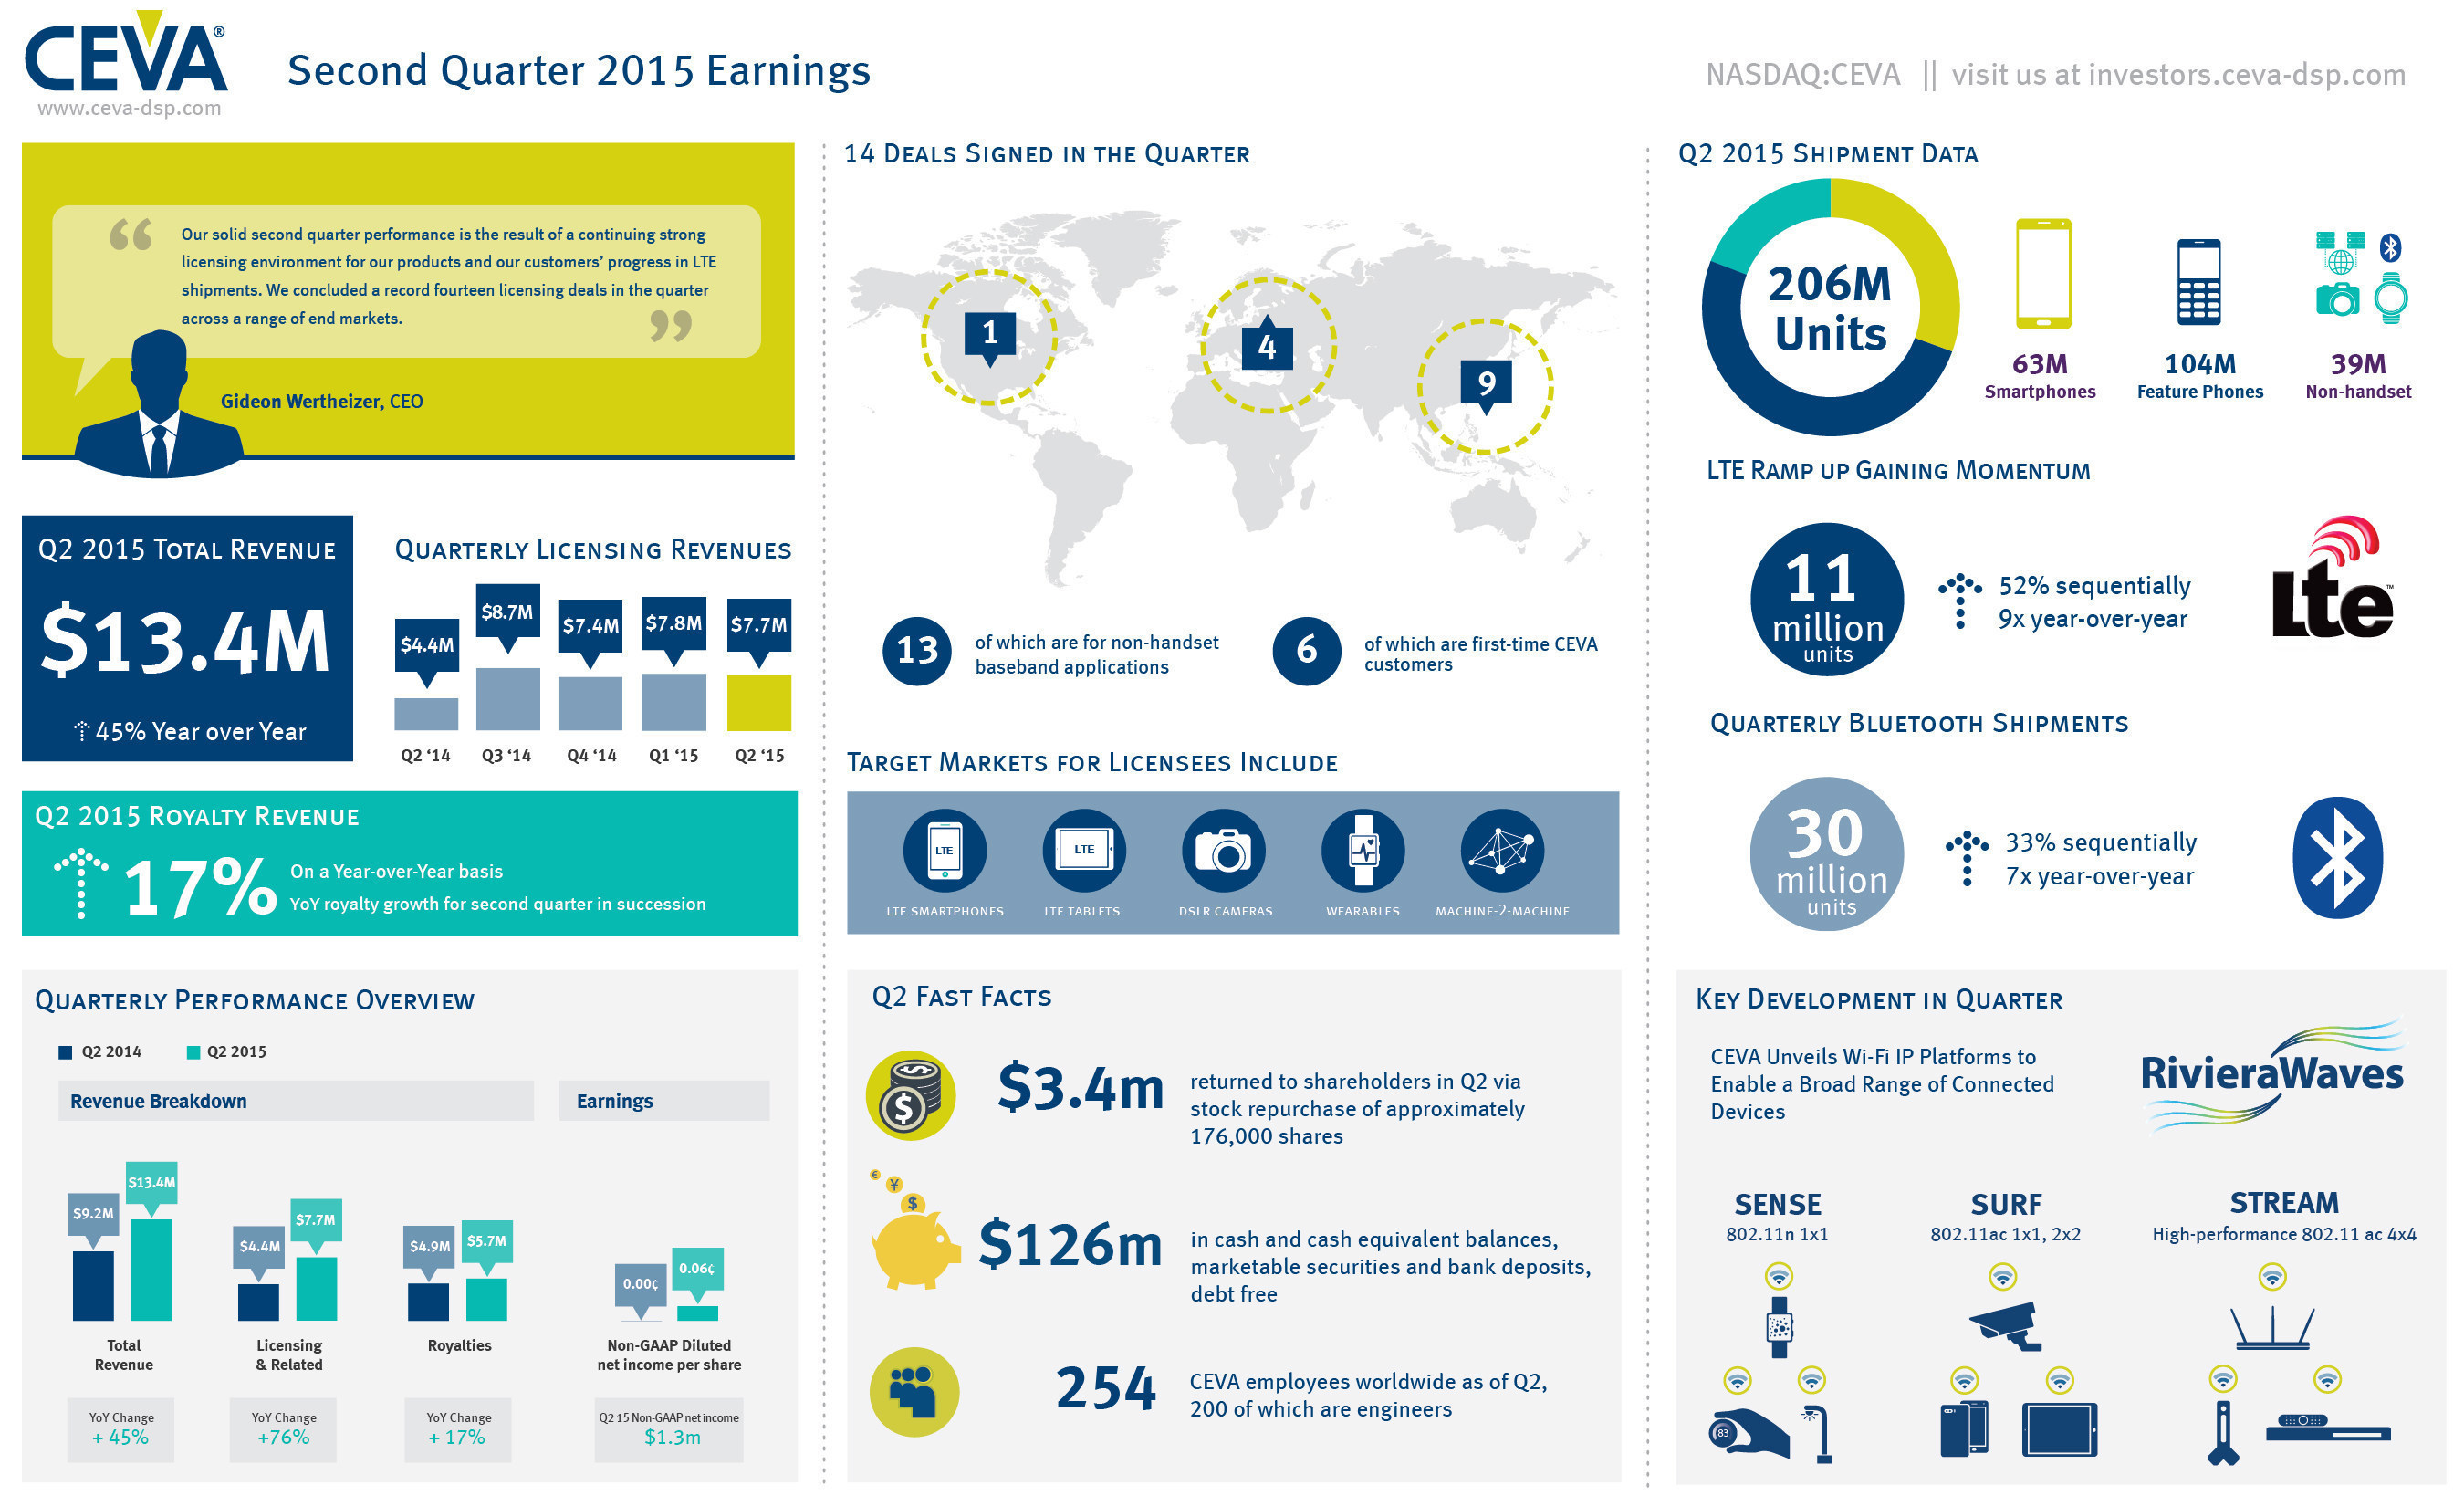 CEVA, Inc reports Q2 2015 total revenues of $13.4m, driven by a record fourteen deals signed in the quarter. Non-GAAP earnings per share is 6 cents. For more highlights from the quarter, including LTE and Bluetooth shipment updates, view the infographic.